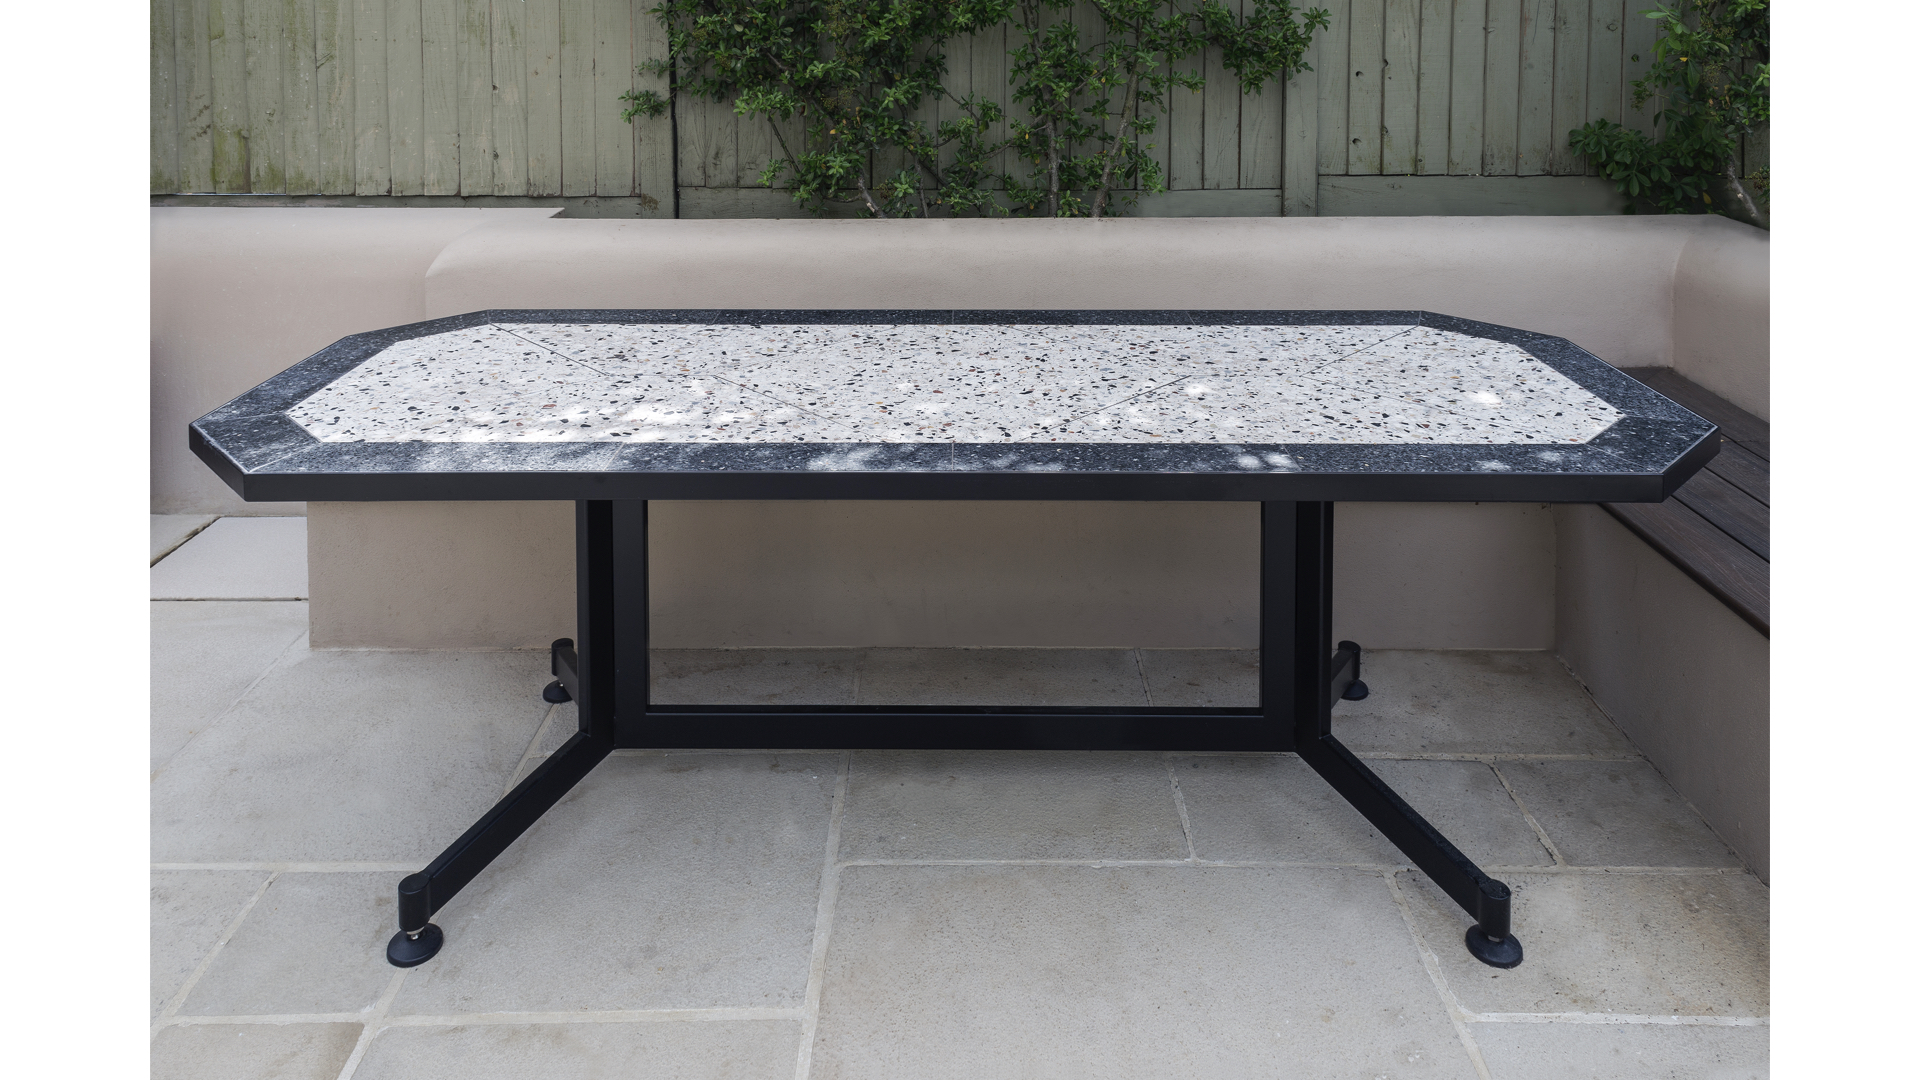 Terrazzo Outdoor Dining Table iii | © Bernardo Guillermo Studio